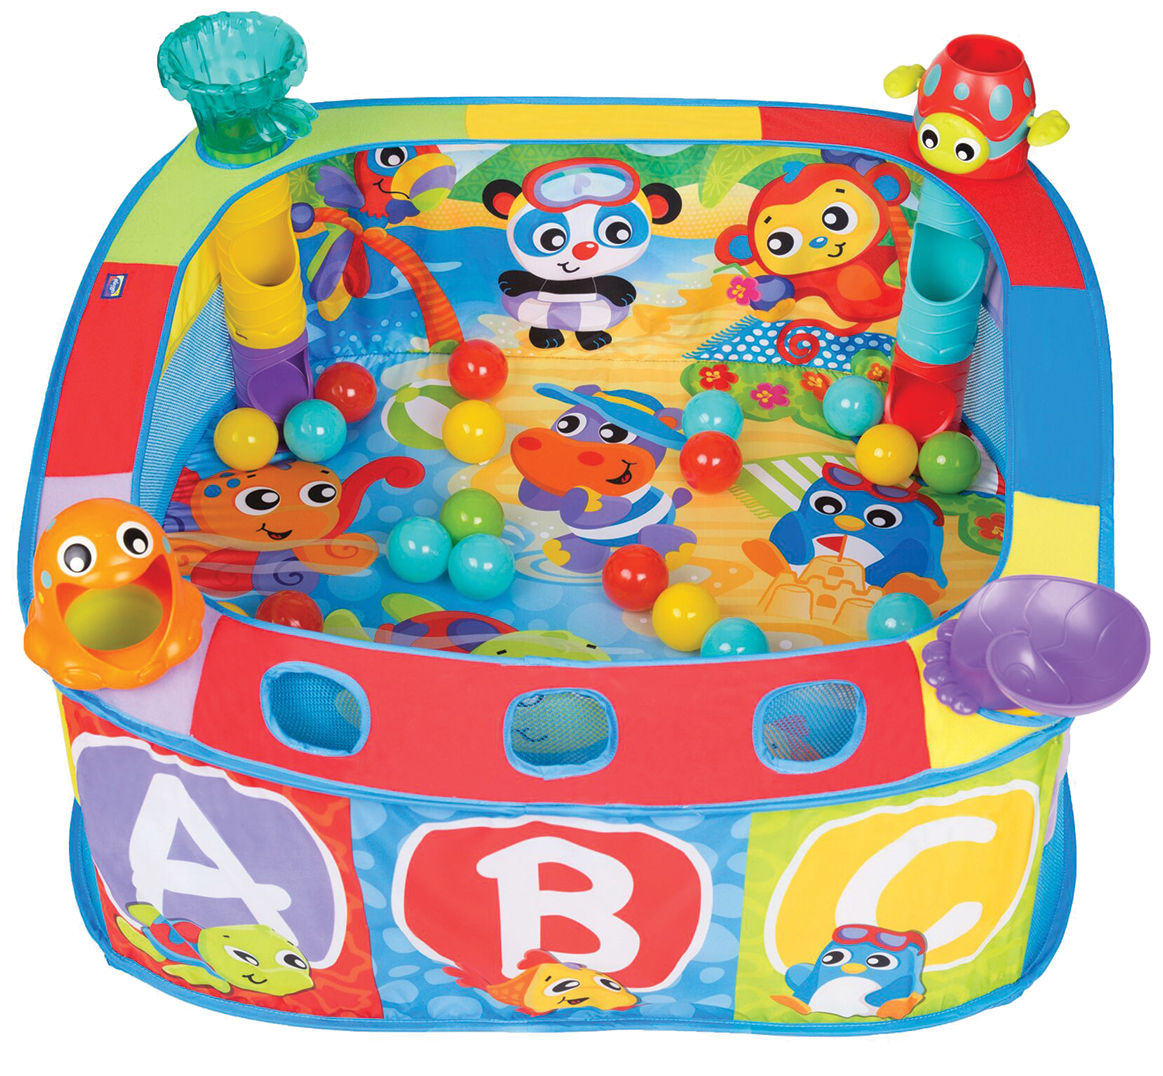 Playgro Pop and Drop Activity Ball Gym